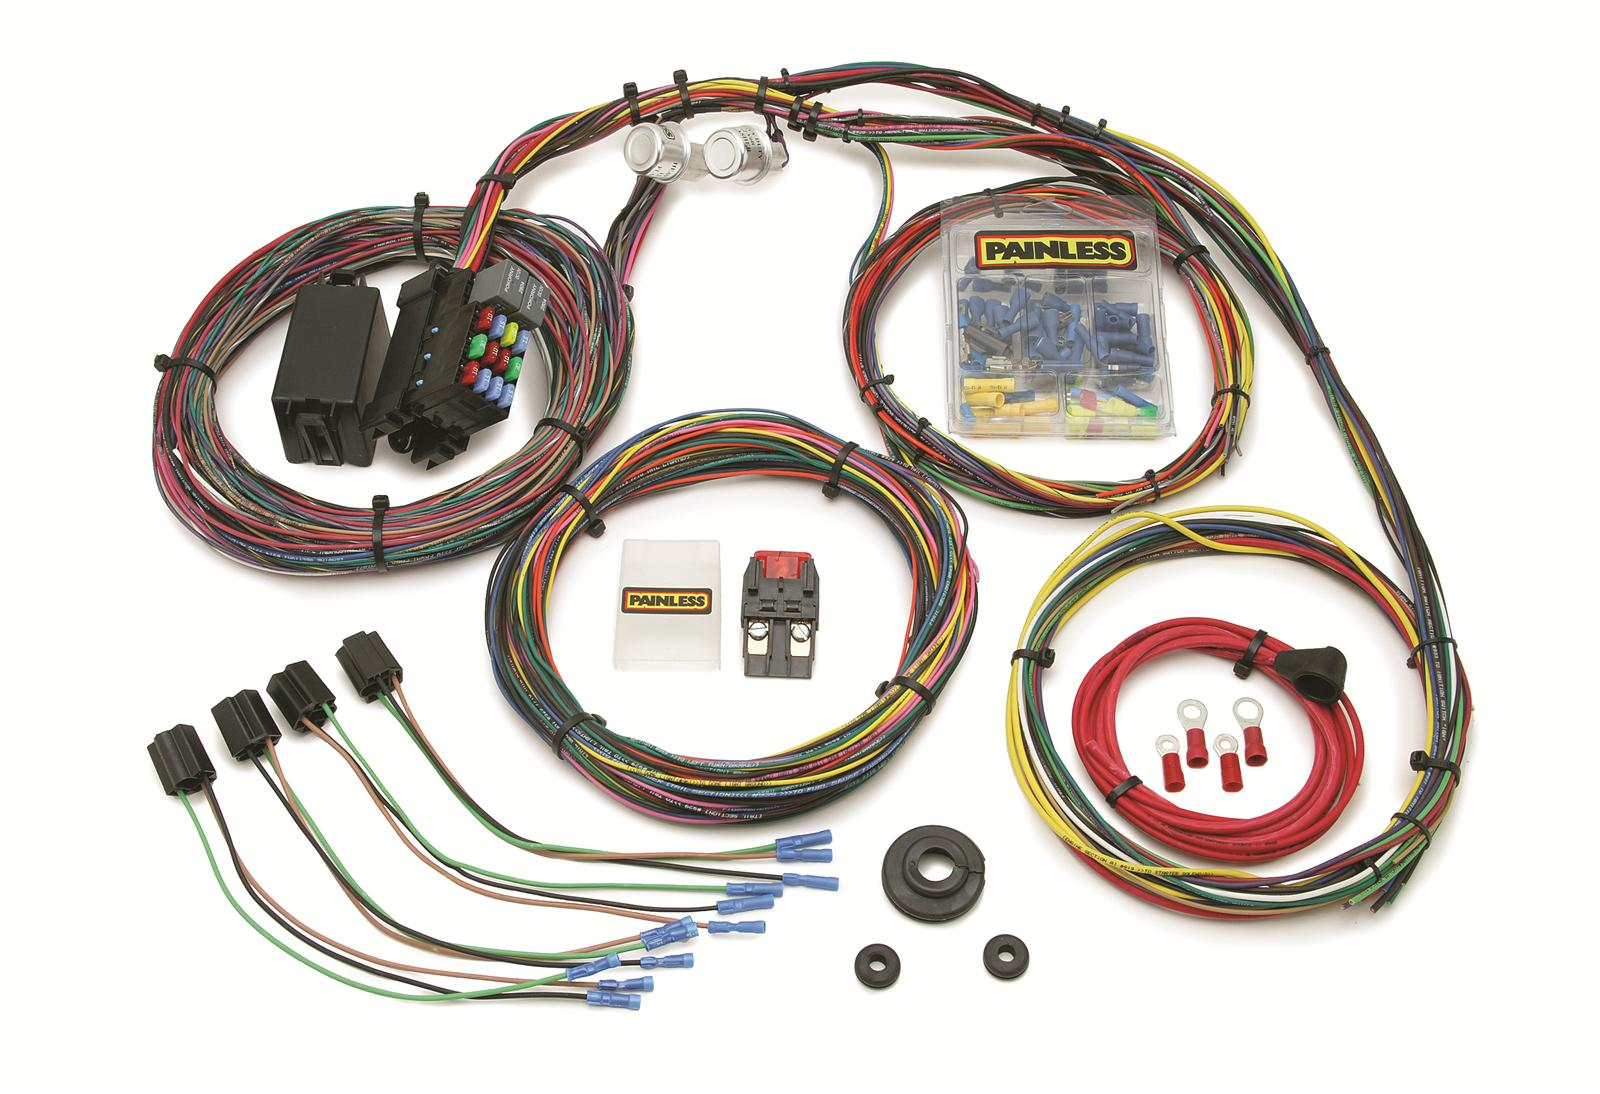 Universal Car Wiring Harness Universal 12 Circuit Wiring Harness